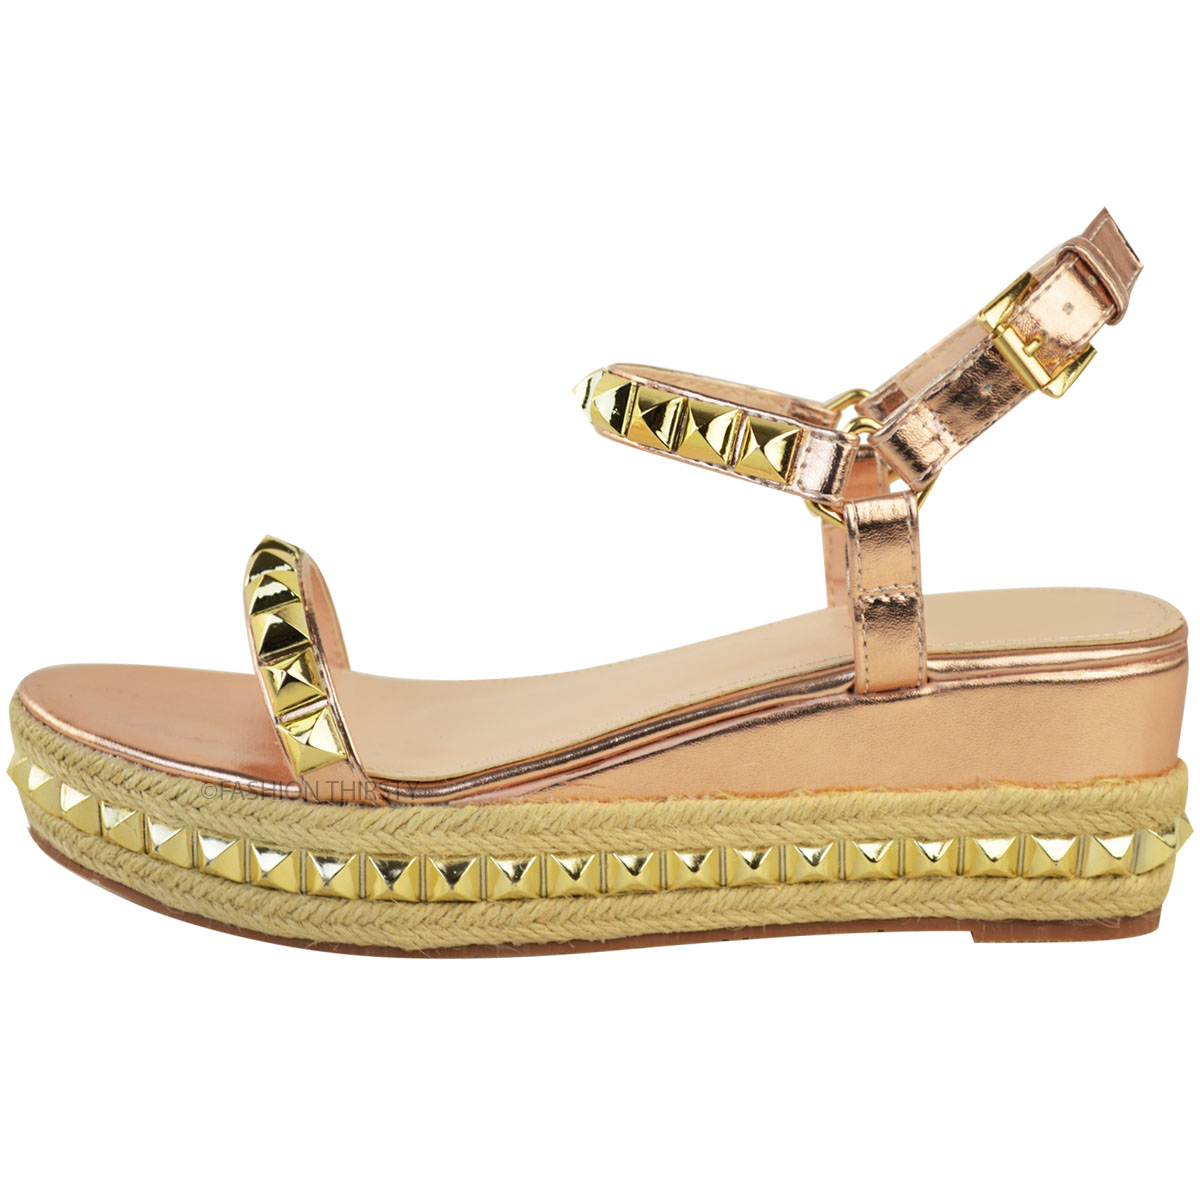 Ladies-Womens-Studded-Low-Wedge-Espadrille-Sandals-Platform-Rose-Gold-Shoes-Size thumbnail 5